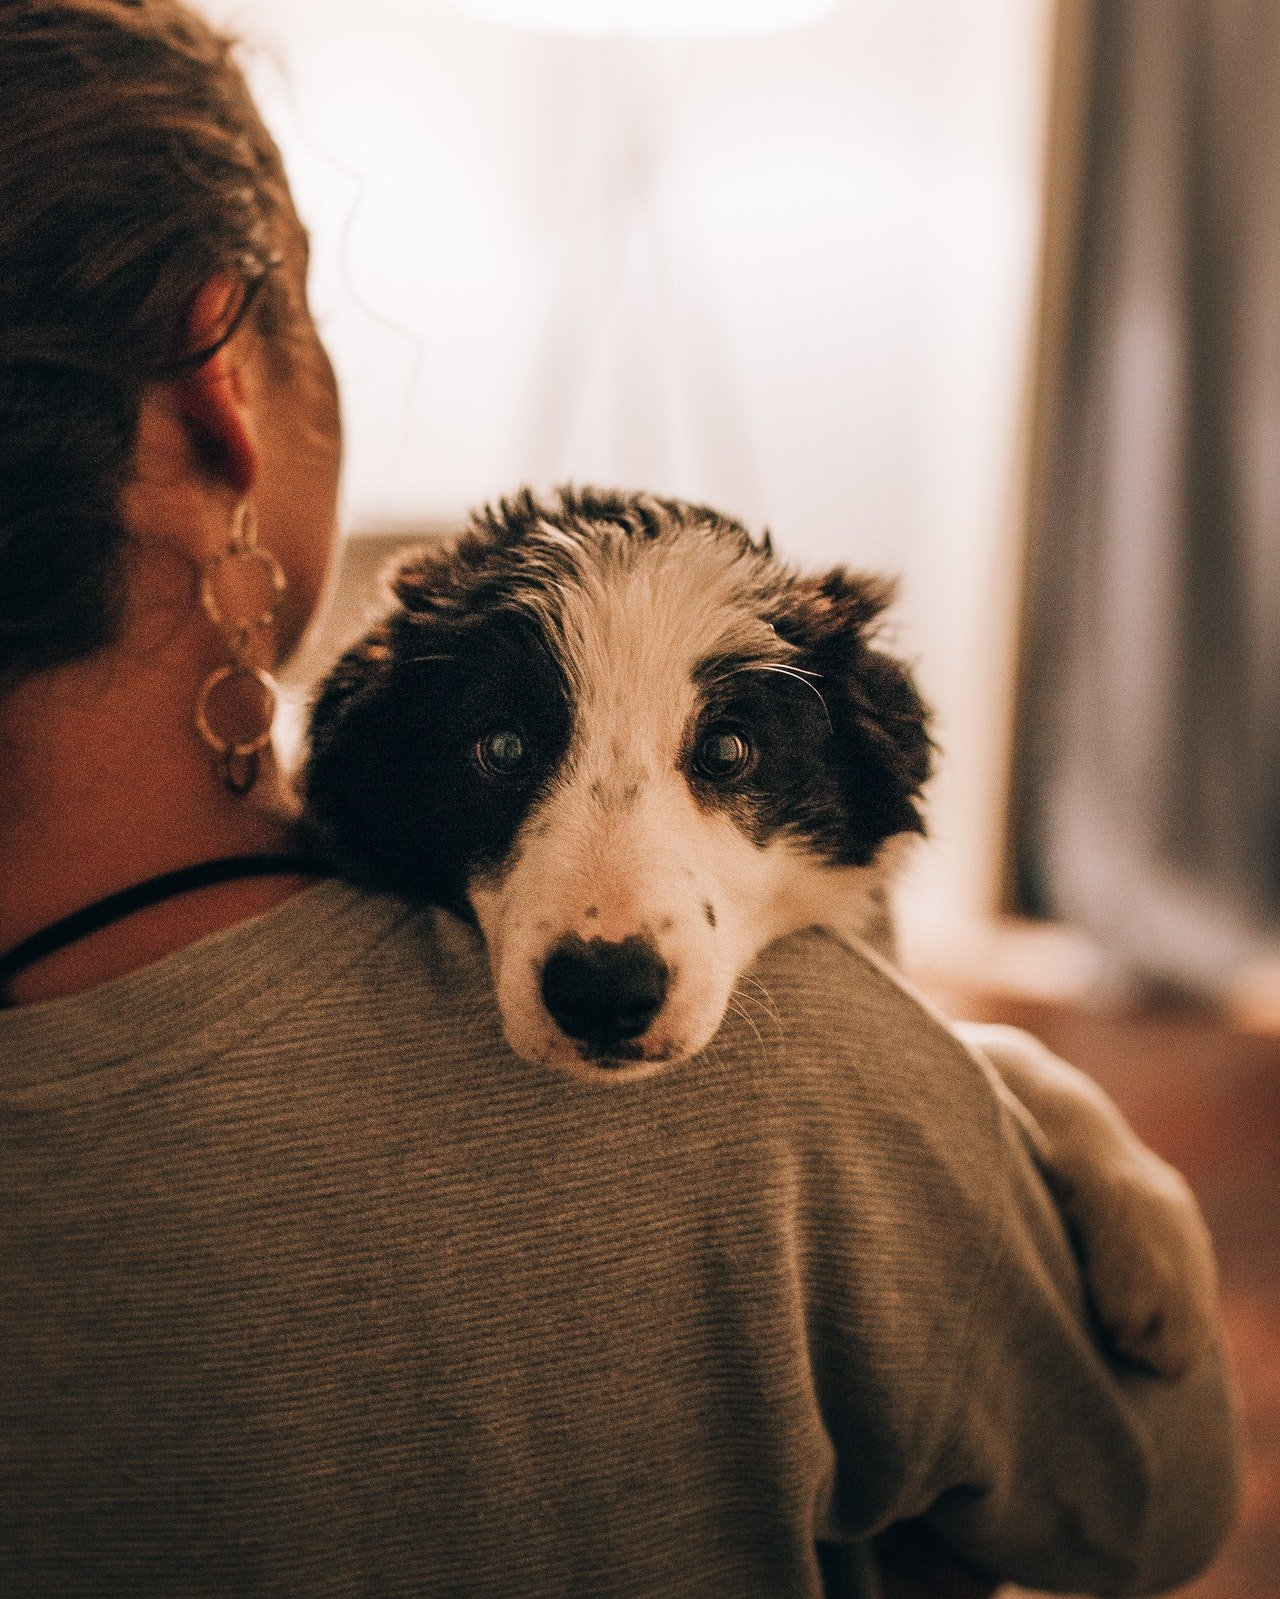 Photo of a woman carrying a dog | Photo: Pexels